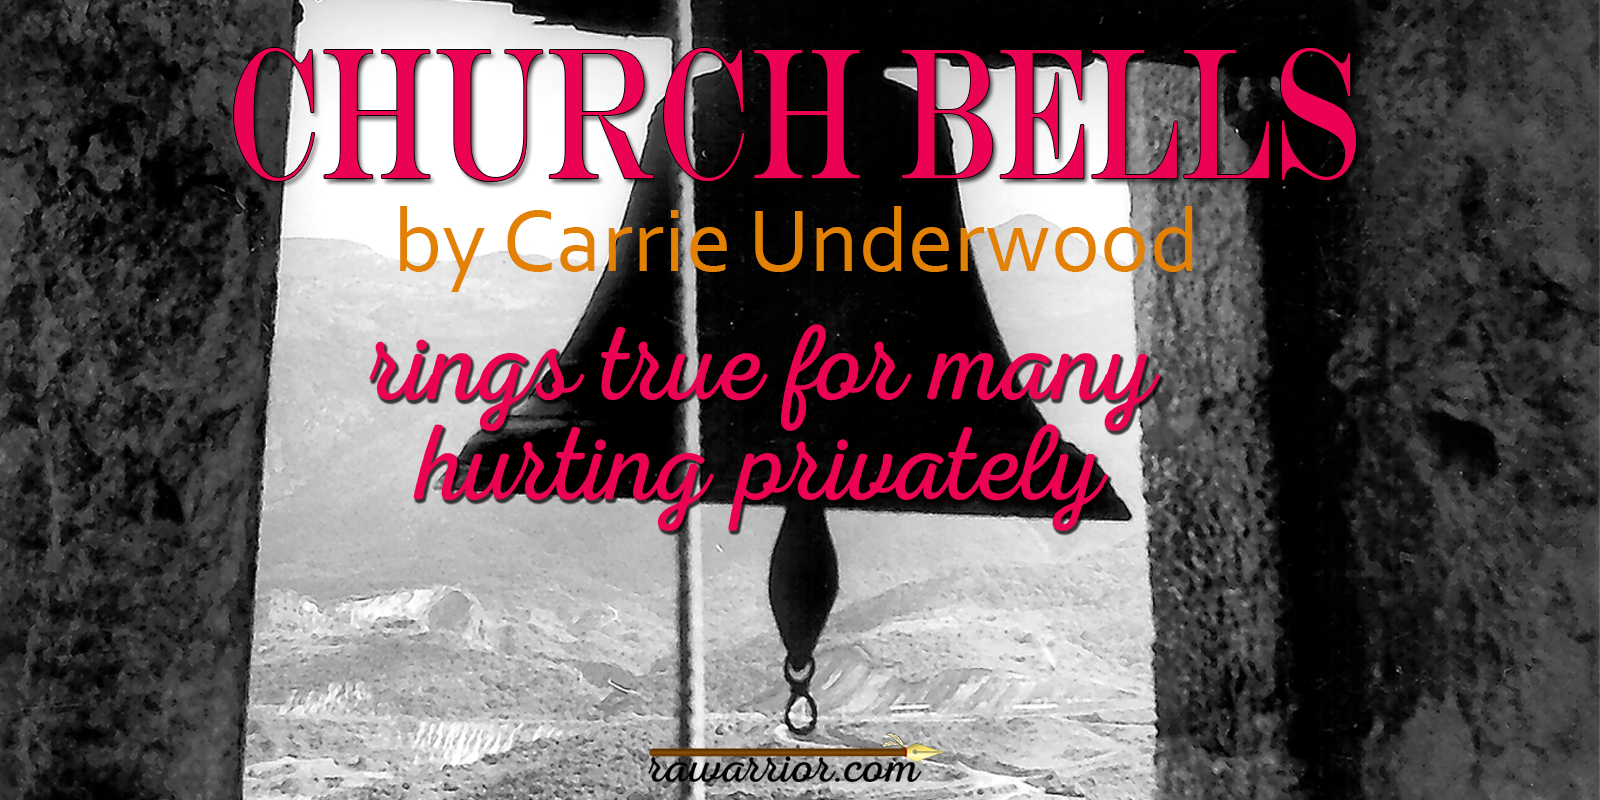 Church Bells by Carrie Underwood